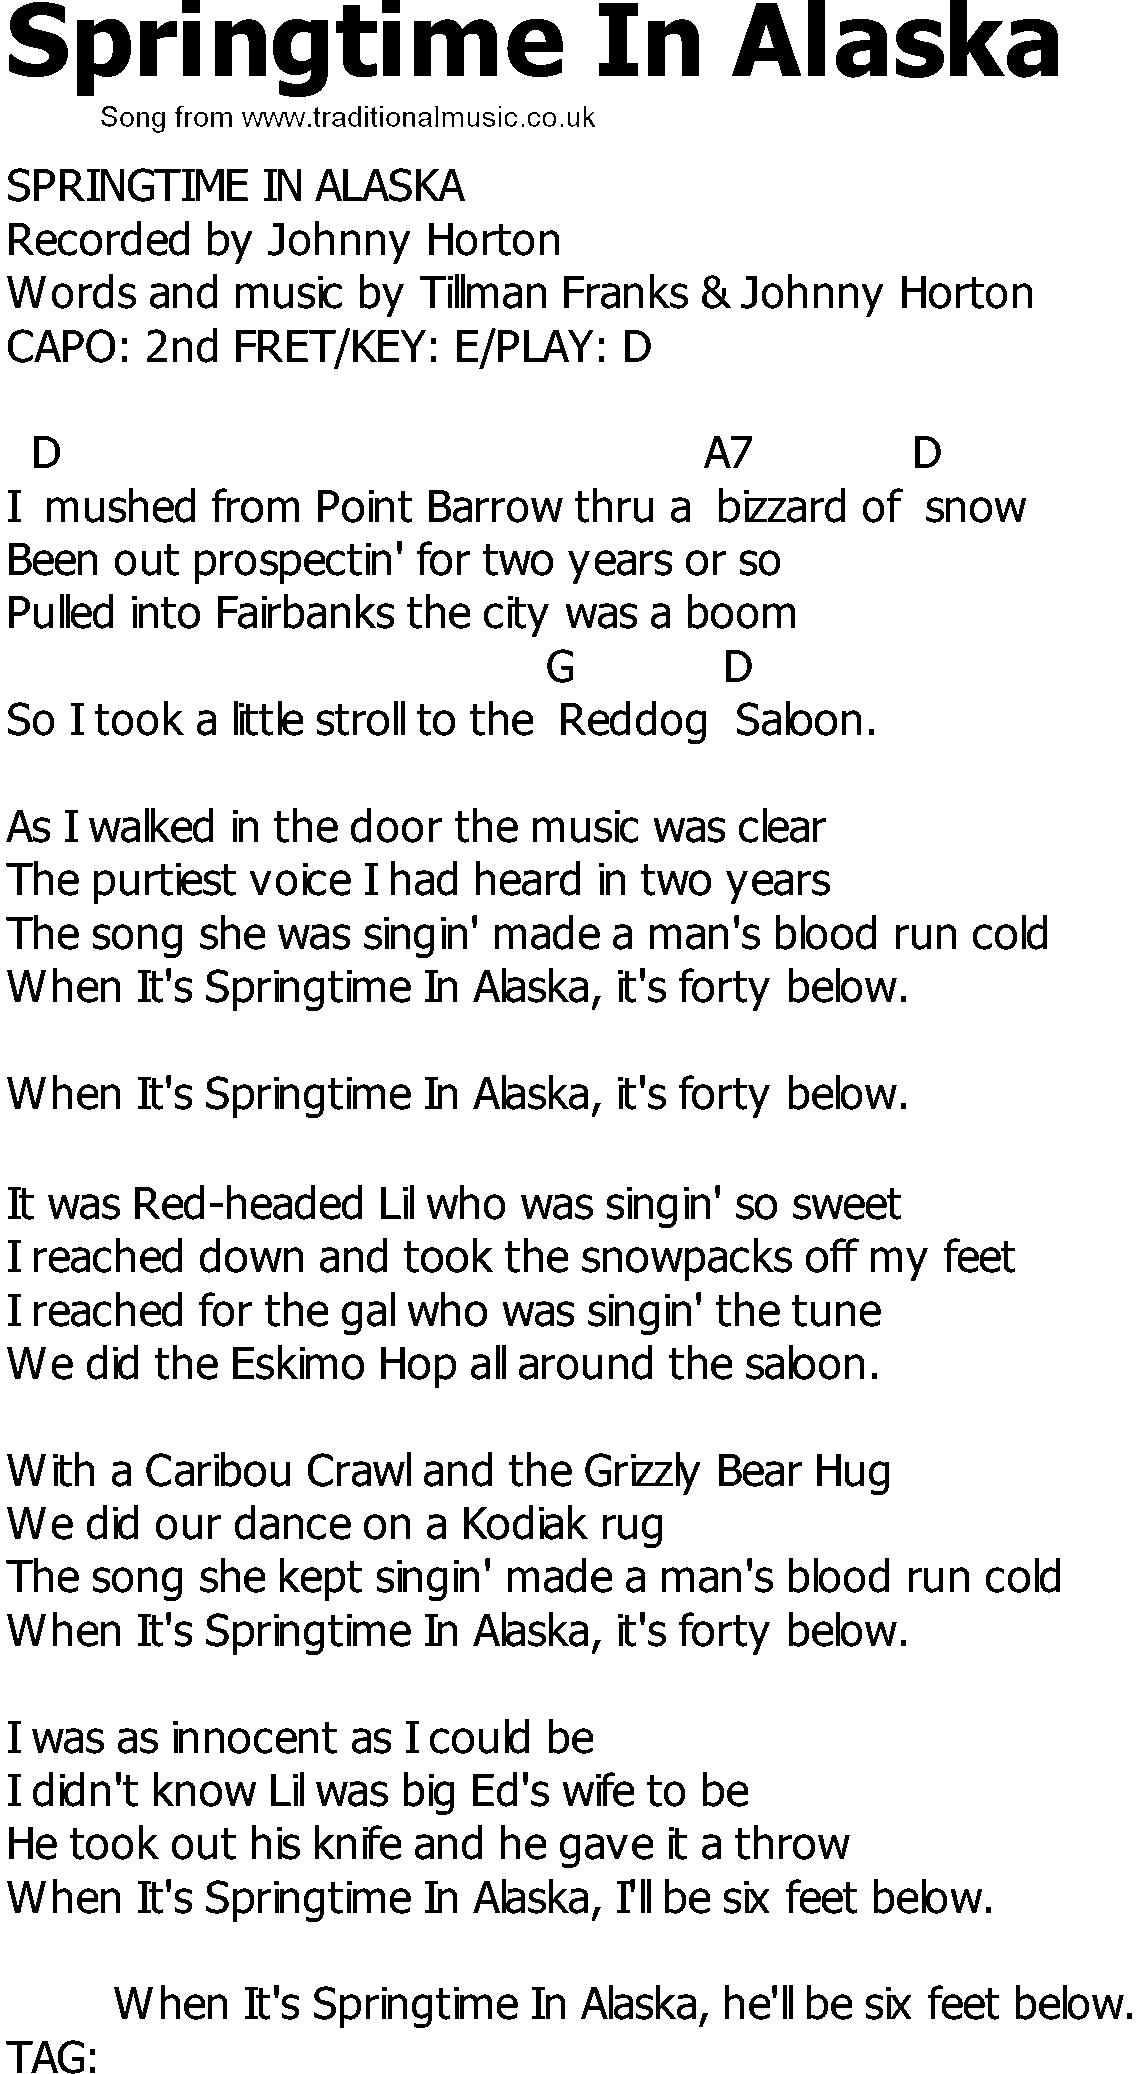 Old Country song lyrics with chords - Springtime In Alaska